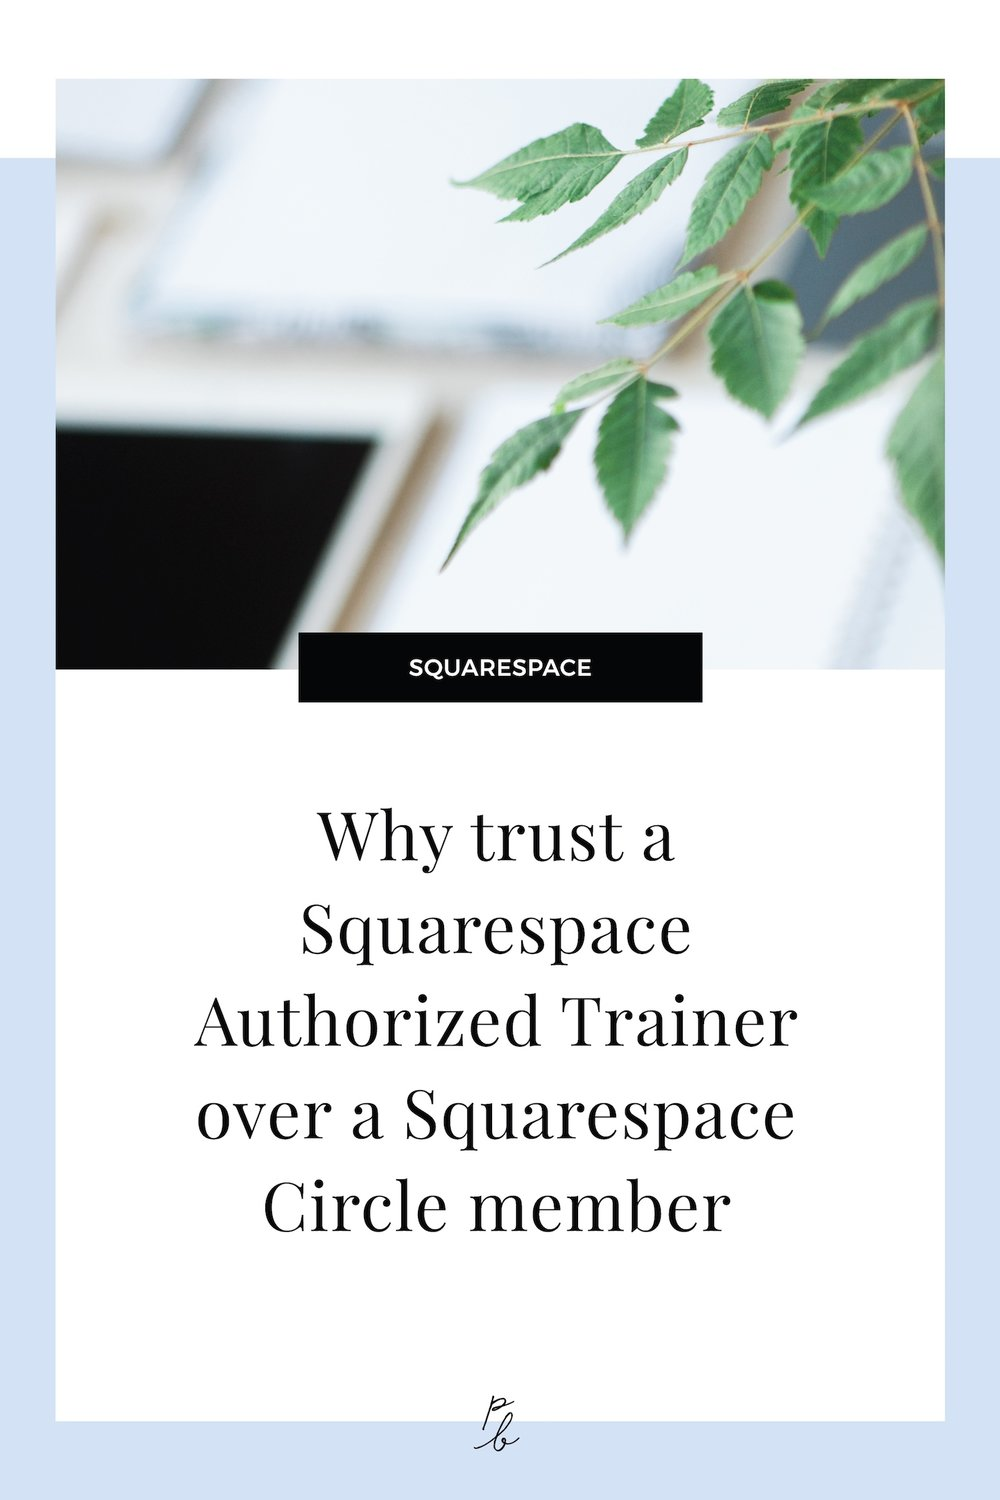 Why trust a Squarespace Authorized Trainer over a Squarespace Circle member.jpg